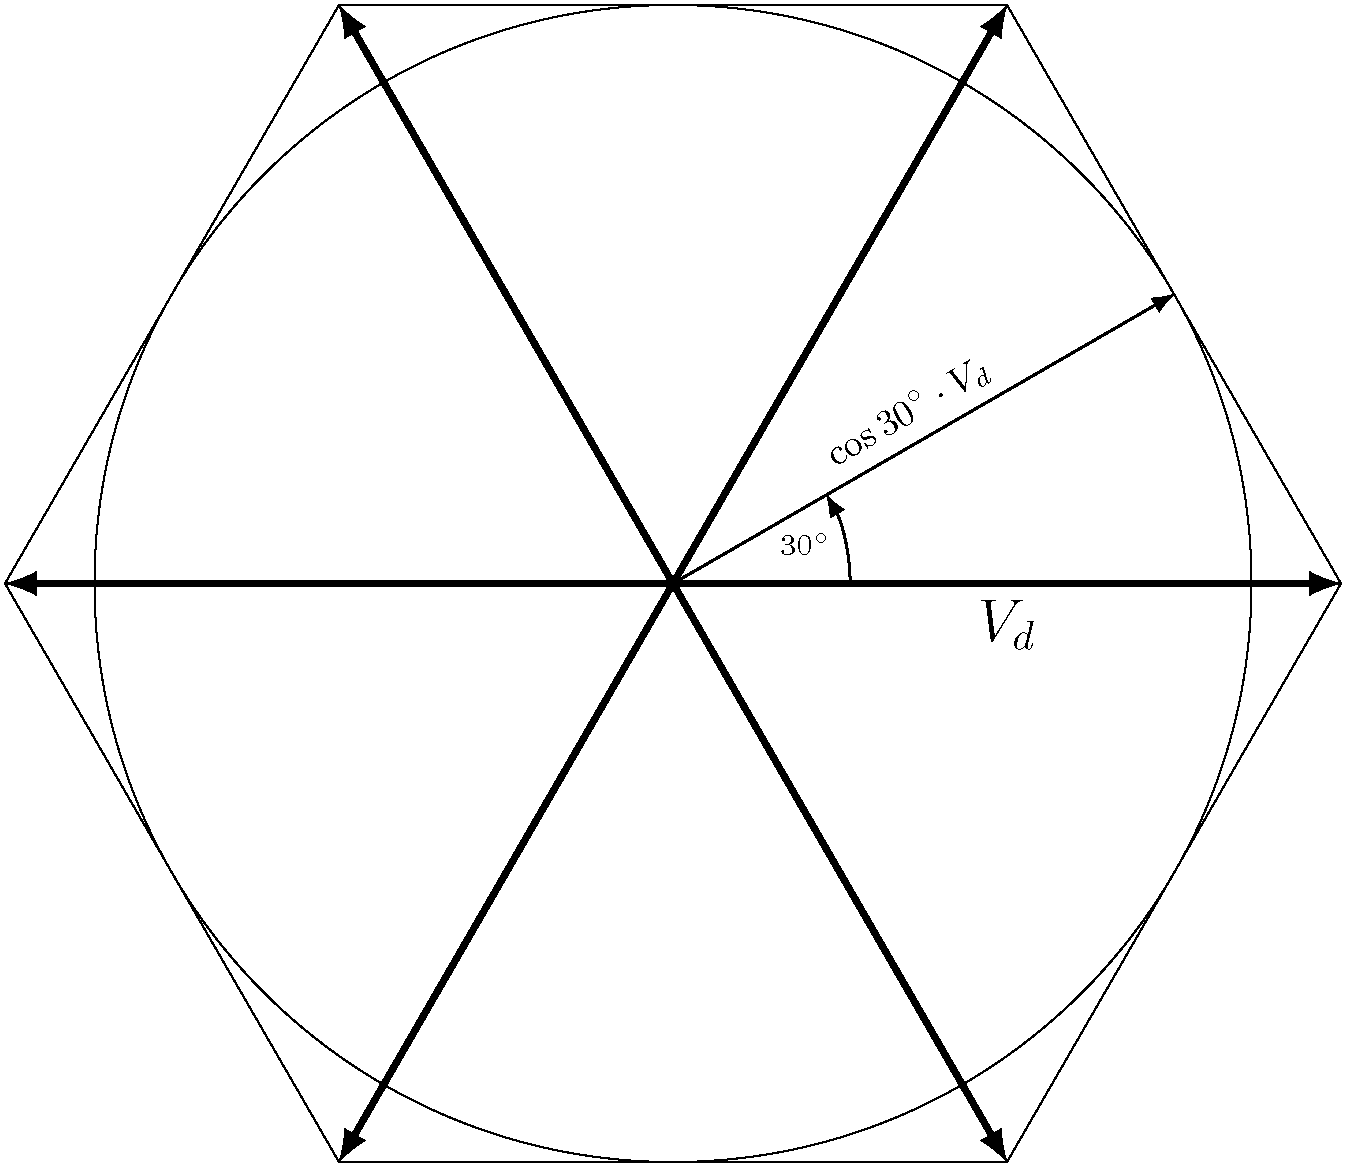 The famous space vector hexagon showing each of the basic vectors and their magnitudes along with a reference vector at 30° which has a maximum linear magnitude.